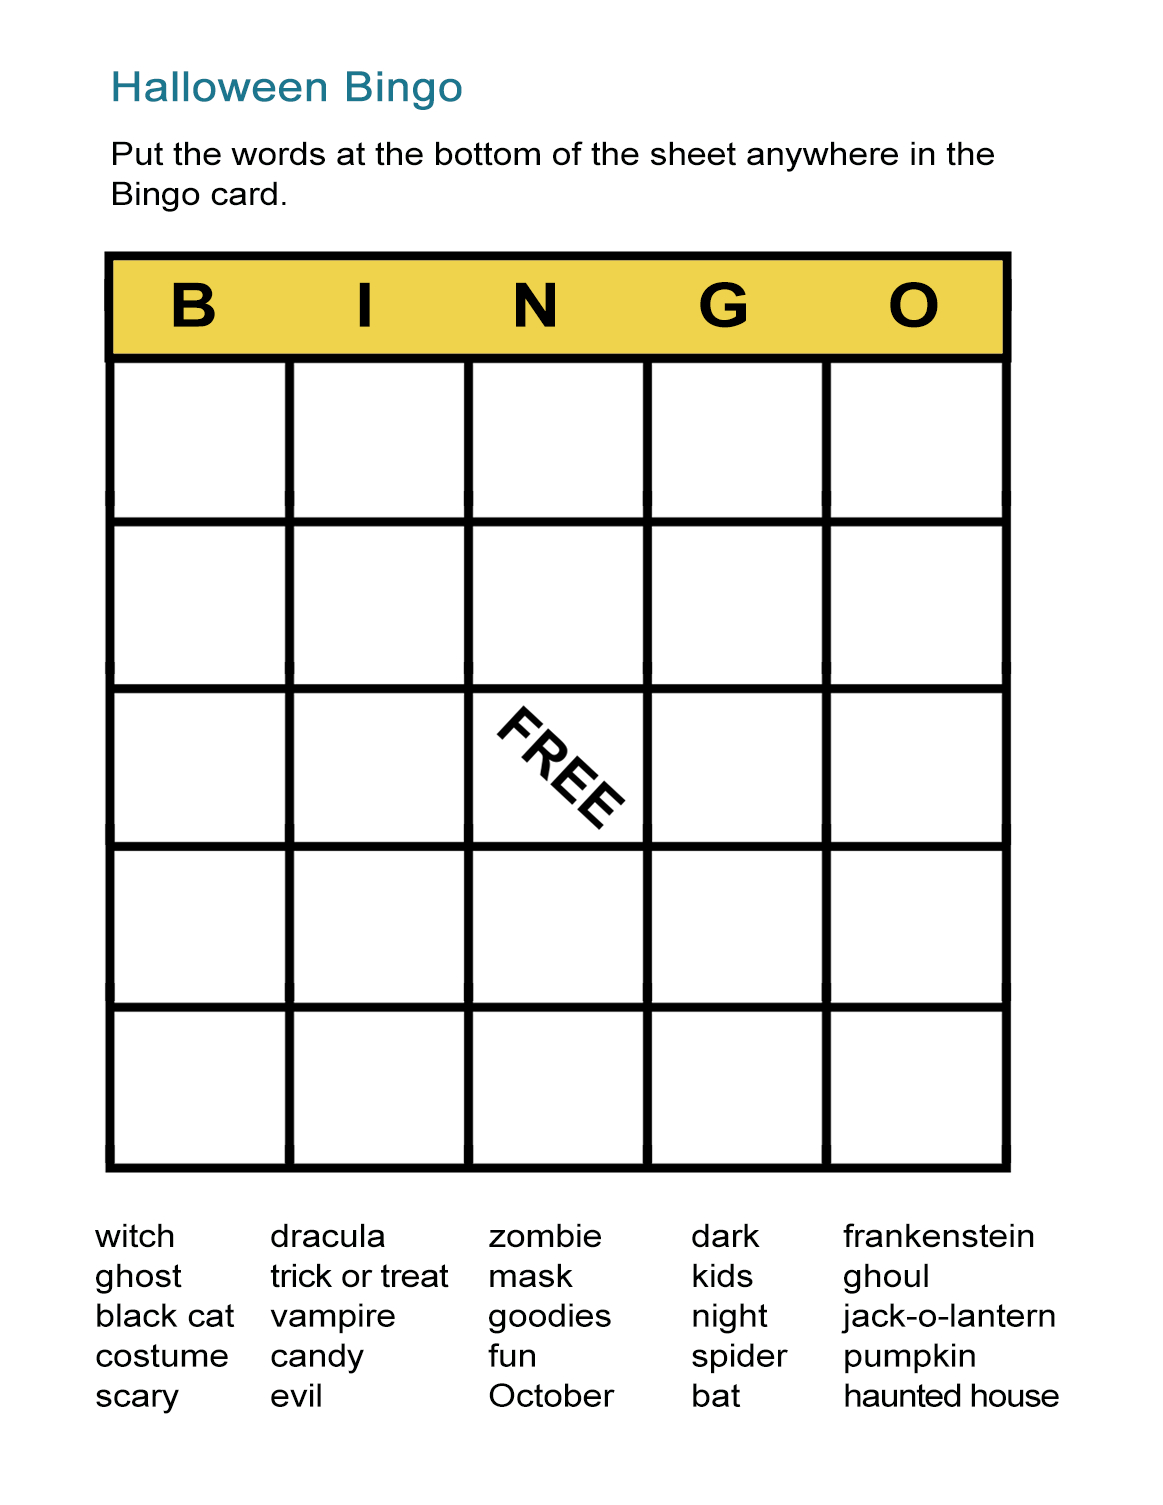 Halloween Bingo Cards: Printable Bingo Games For Class - All Esl - Free Printable Bingo Games